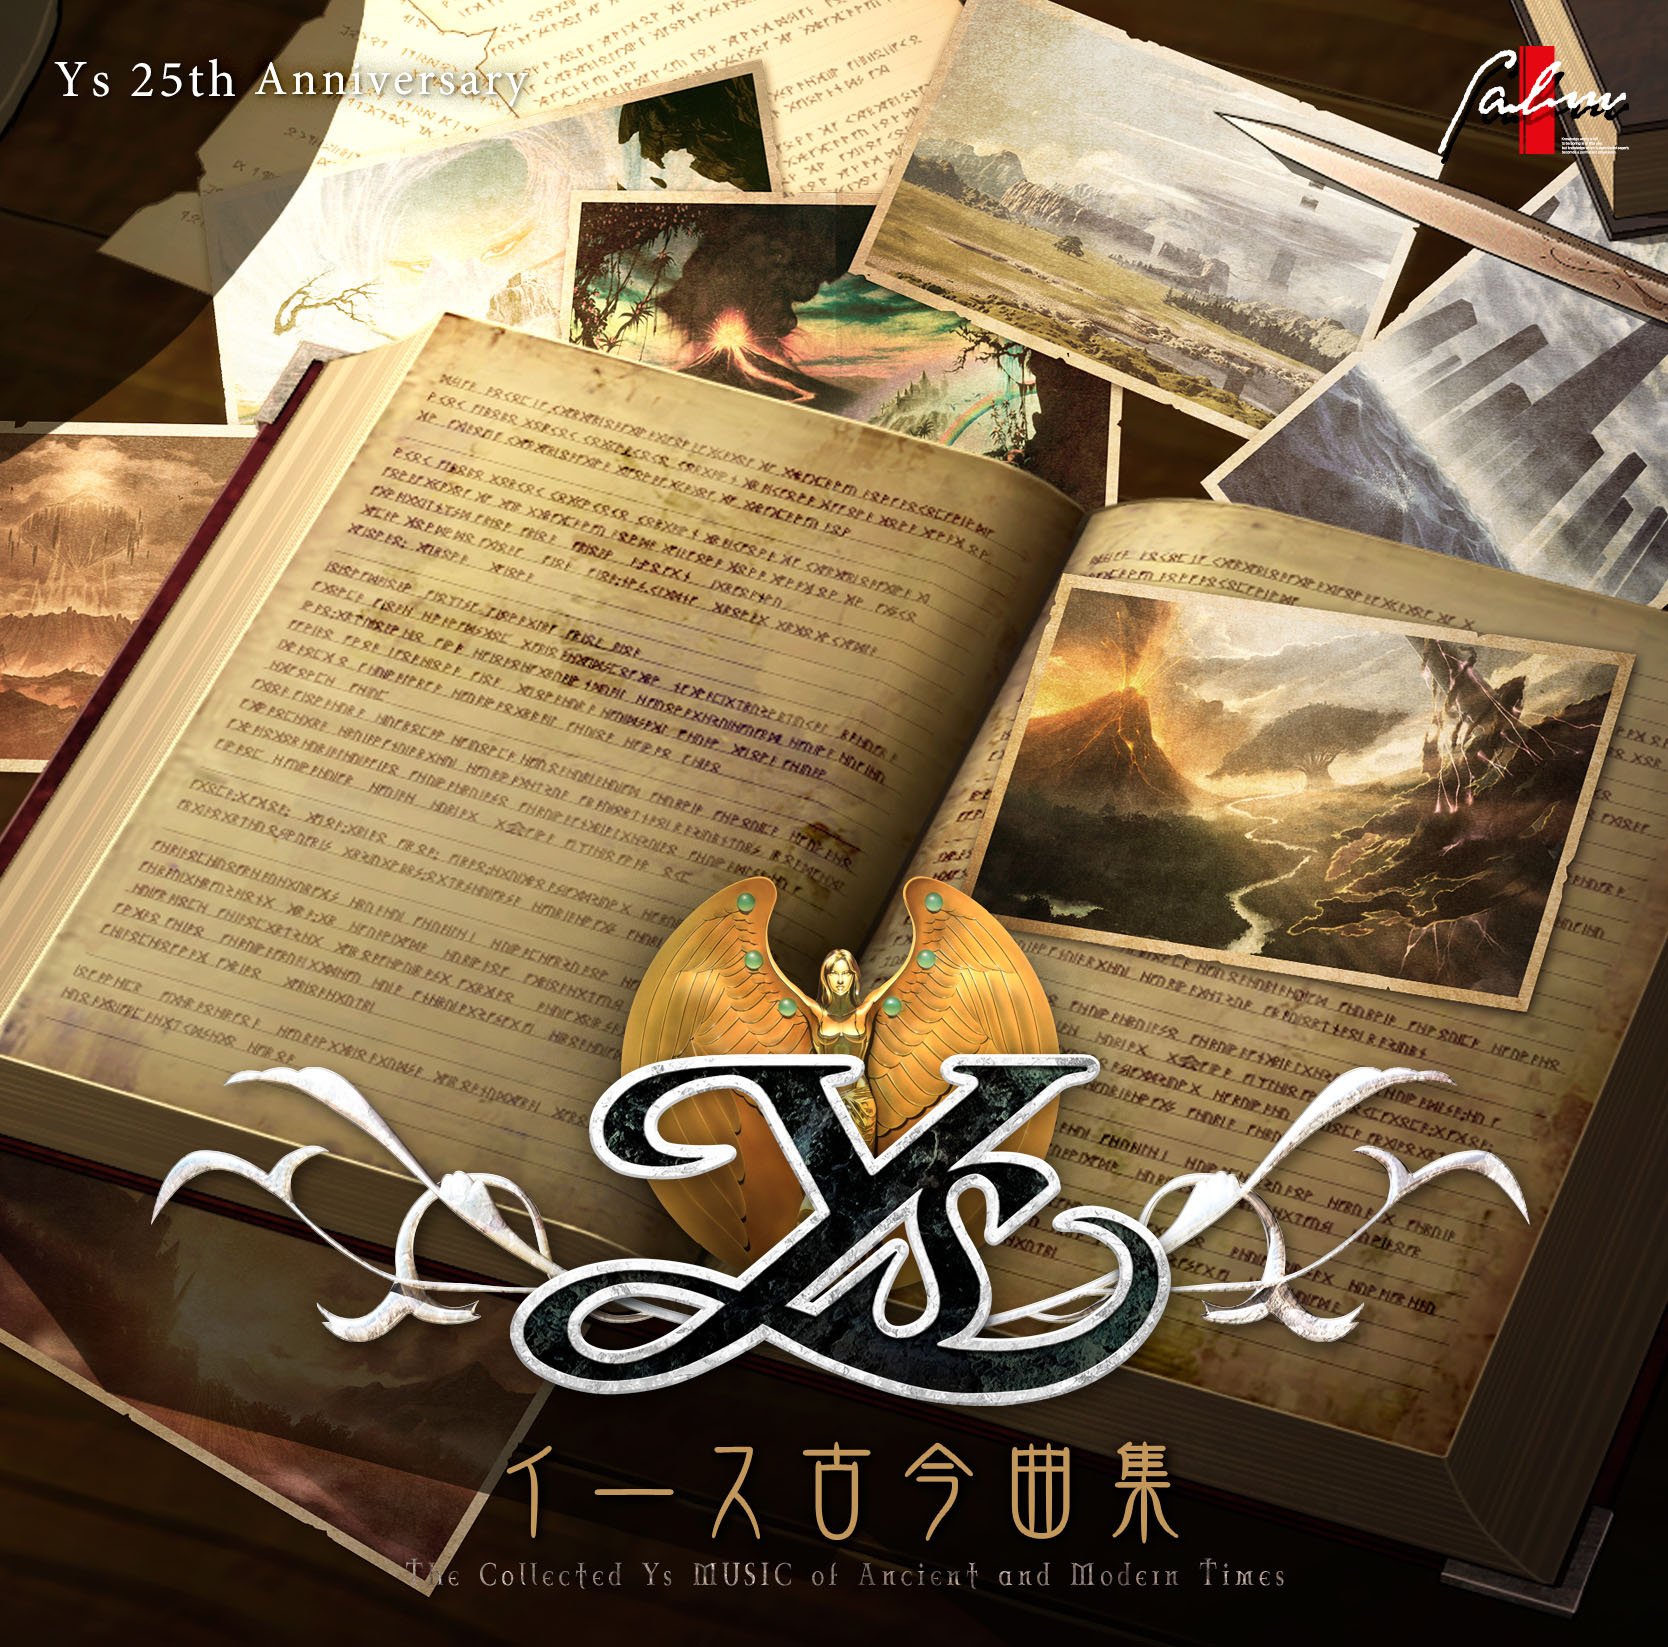 The Collected Ys MUSIC of Ancient and Mod..